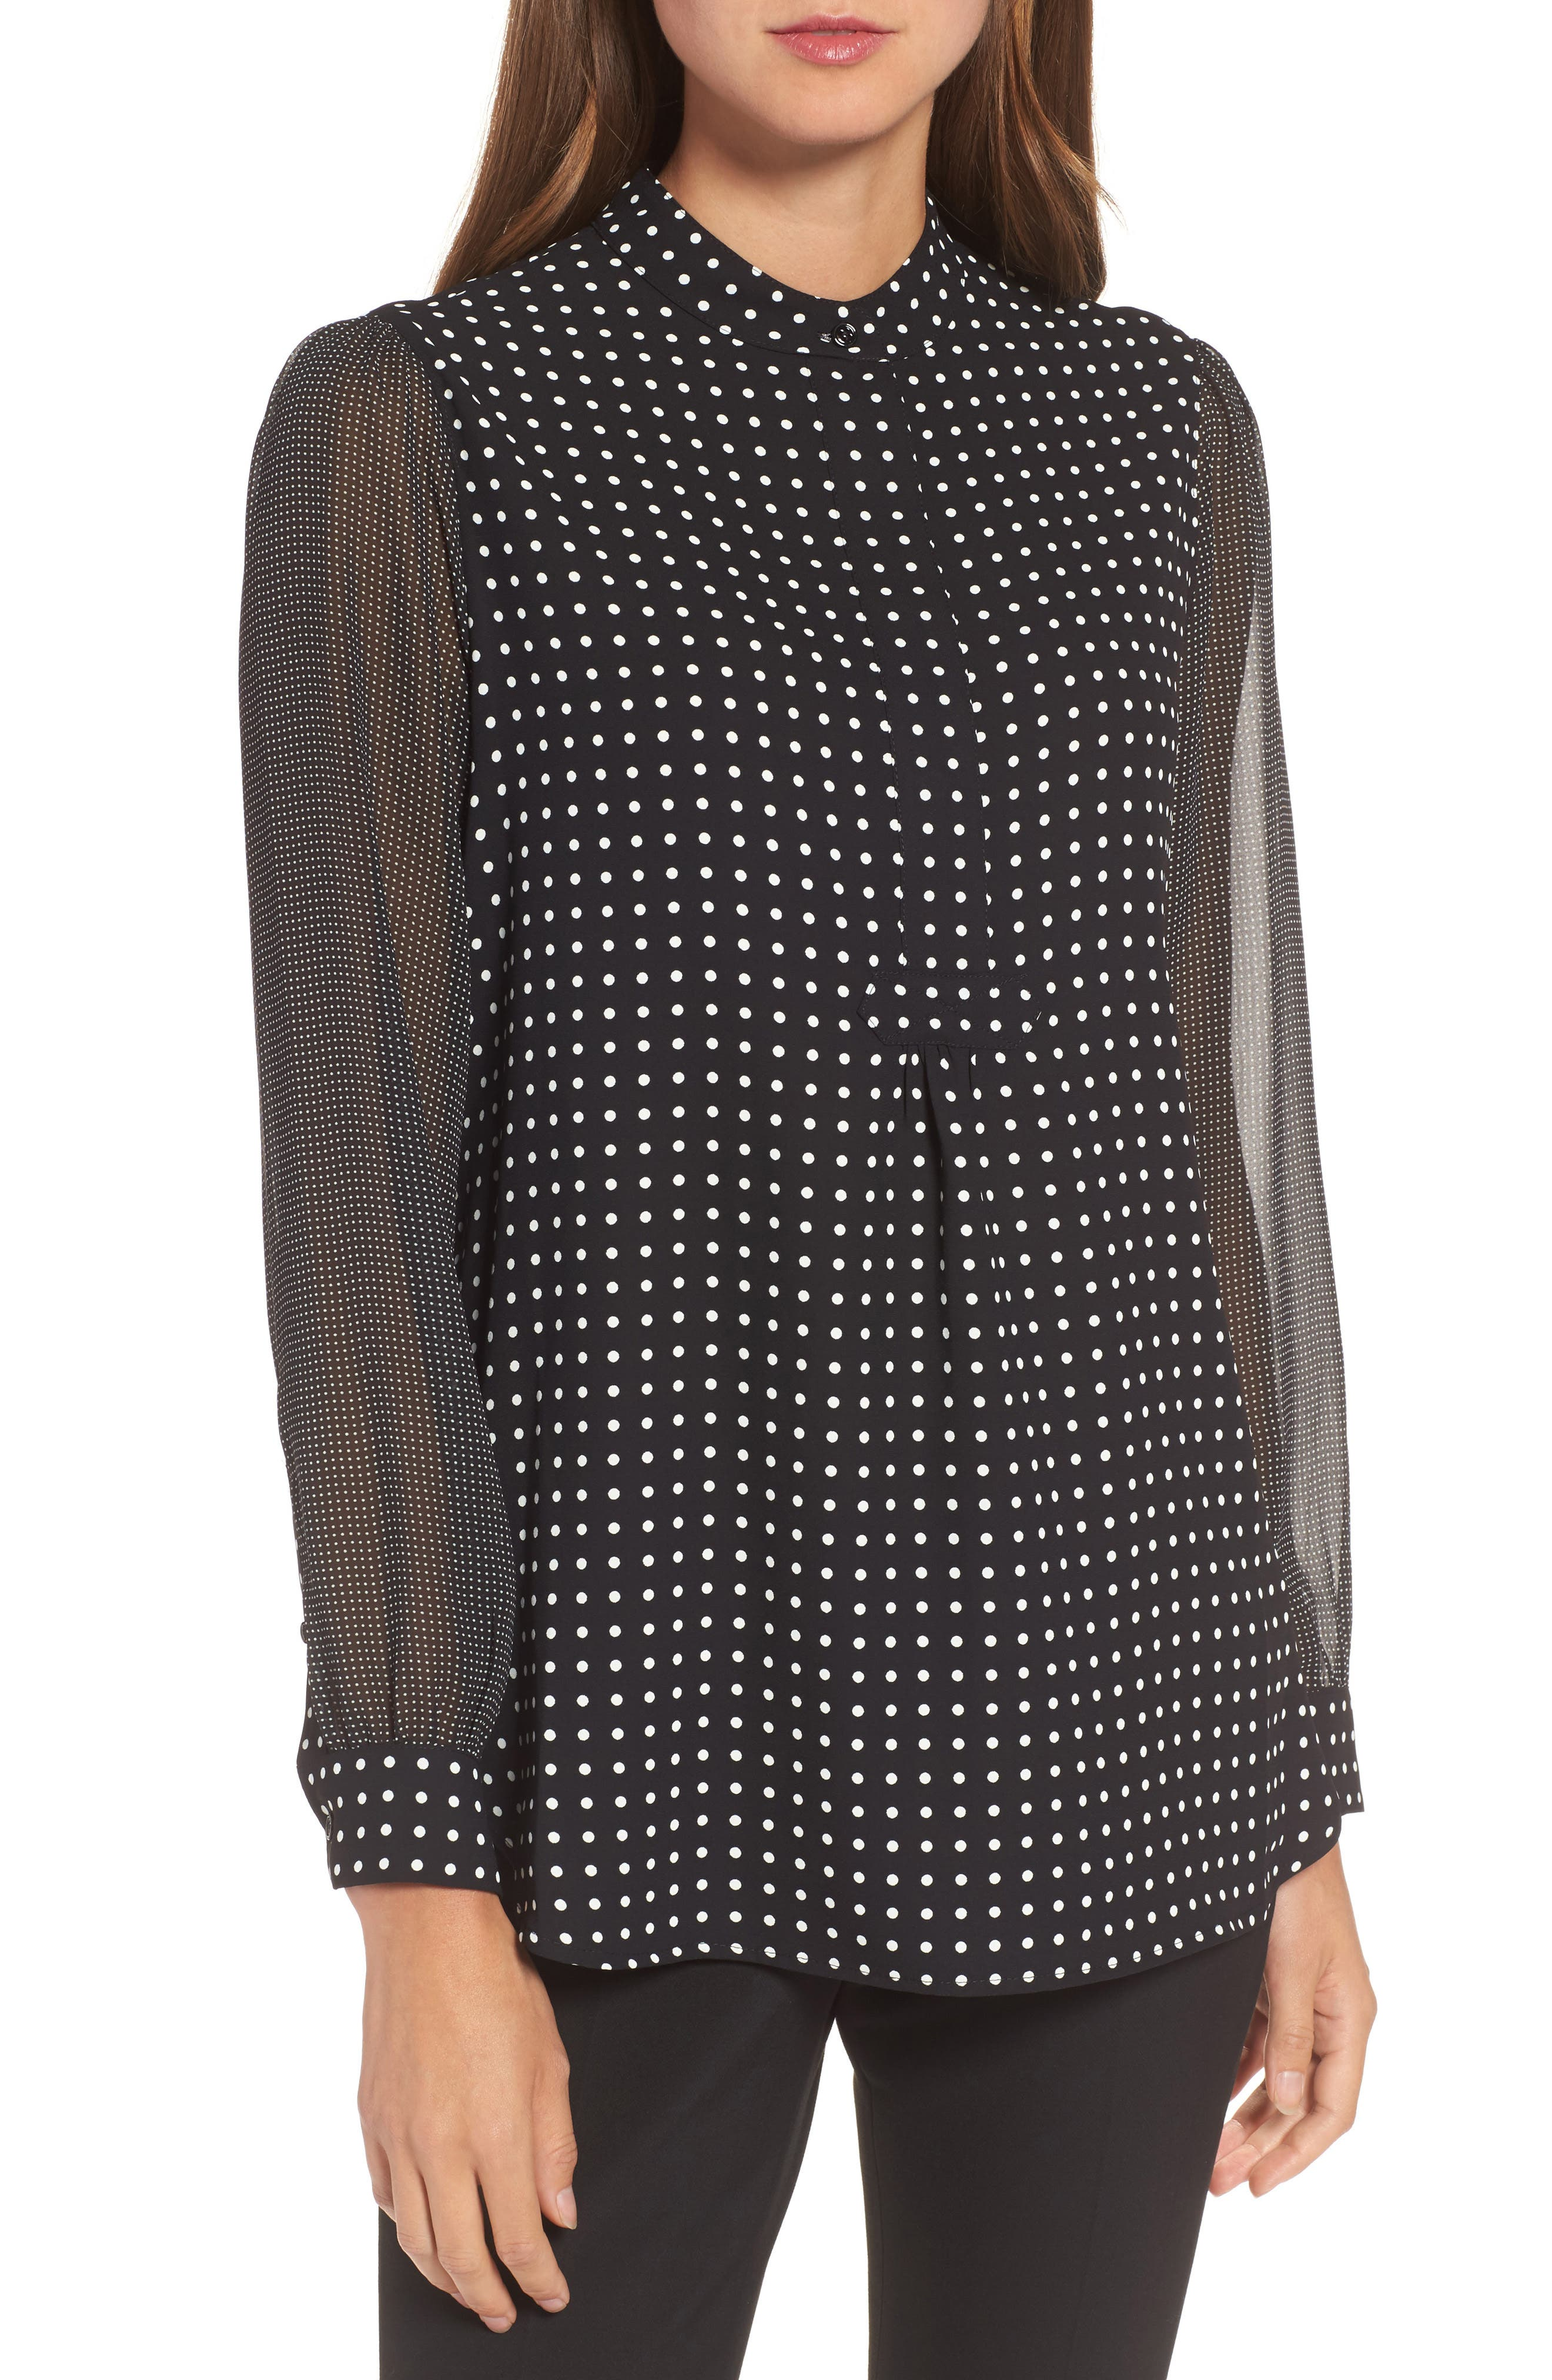 Alternate Image 1 Selected - Anne Klein Mixed Dot Print Blouse